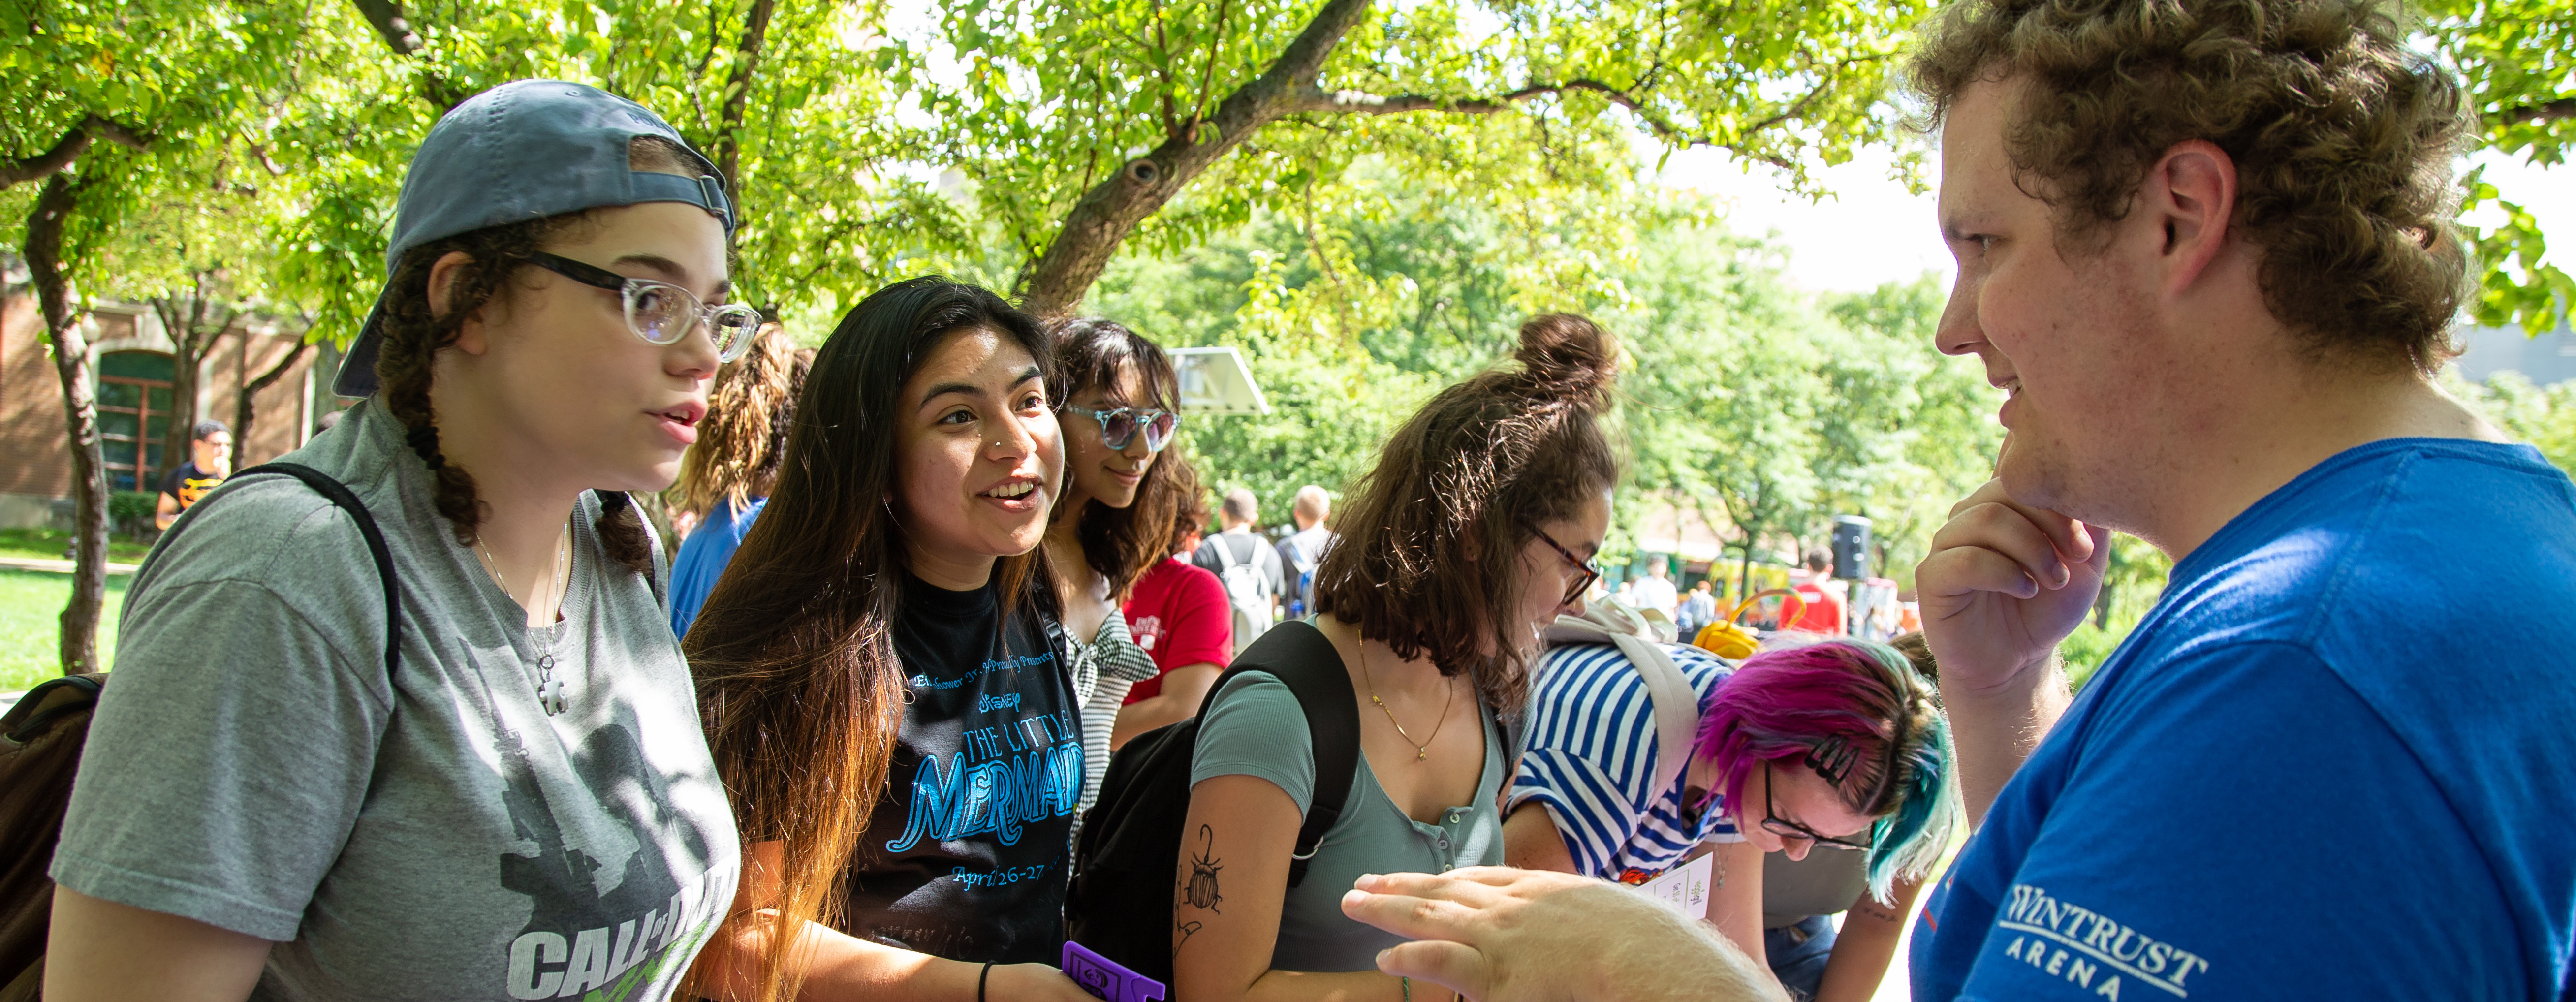 Fall quarter classes begin Wednesday, September 11. Get prepared for the quarter by establishing a healthy routine between school, work and your social life while getting plenty of rest.